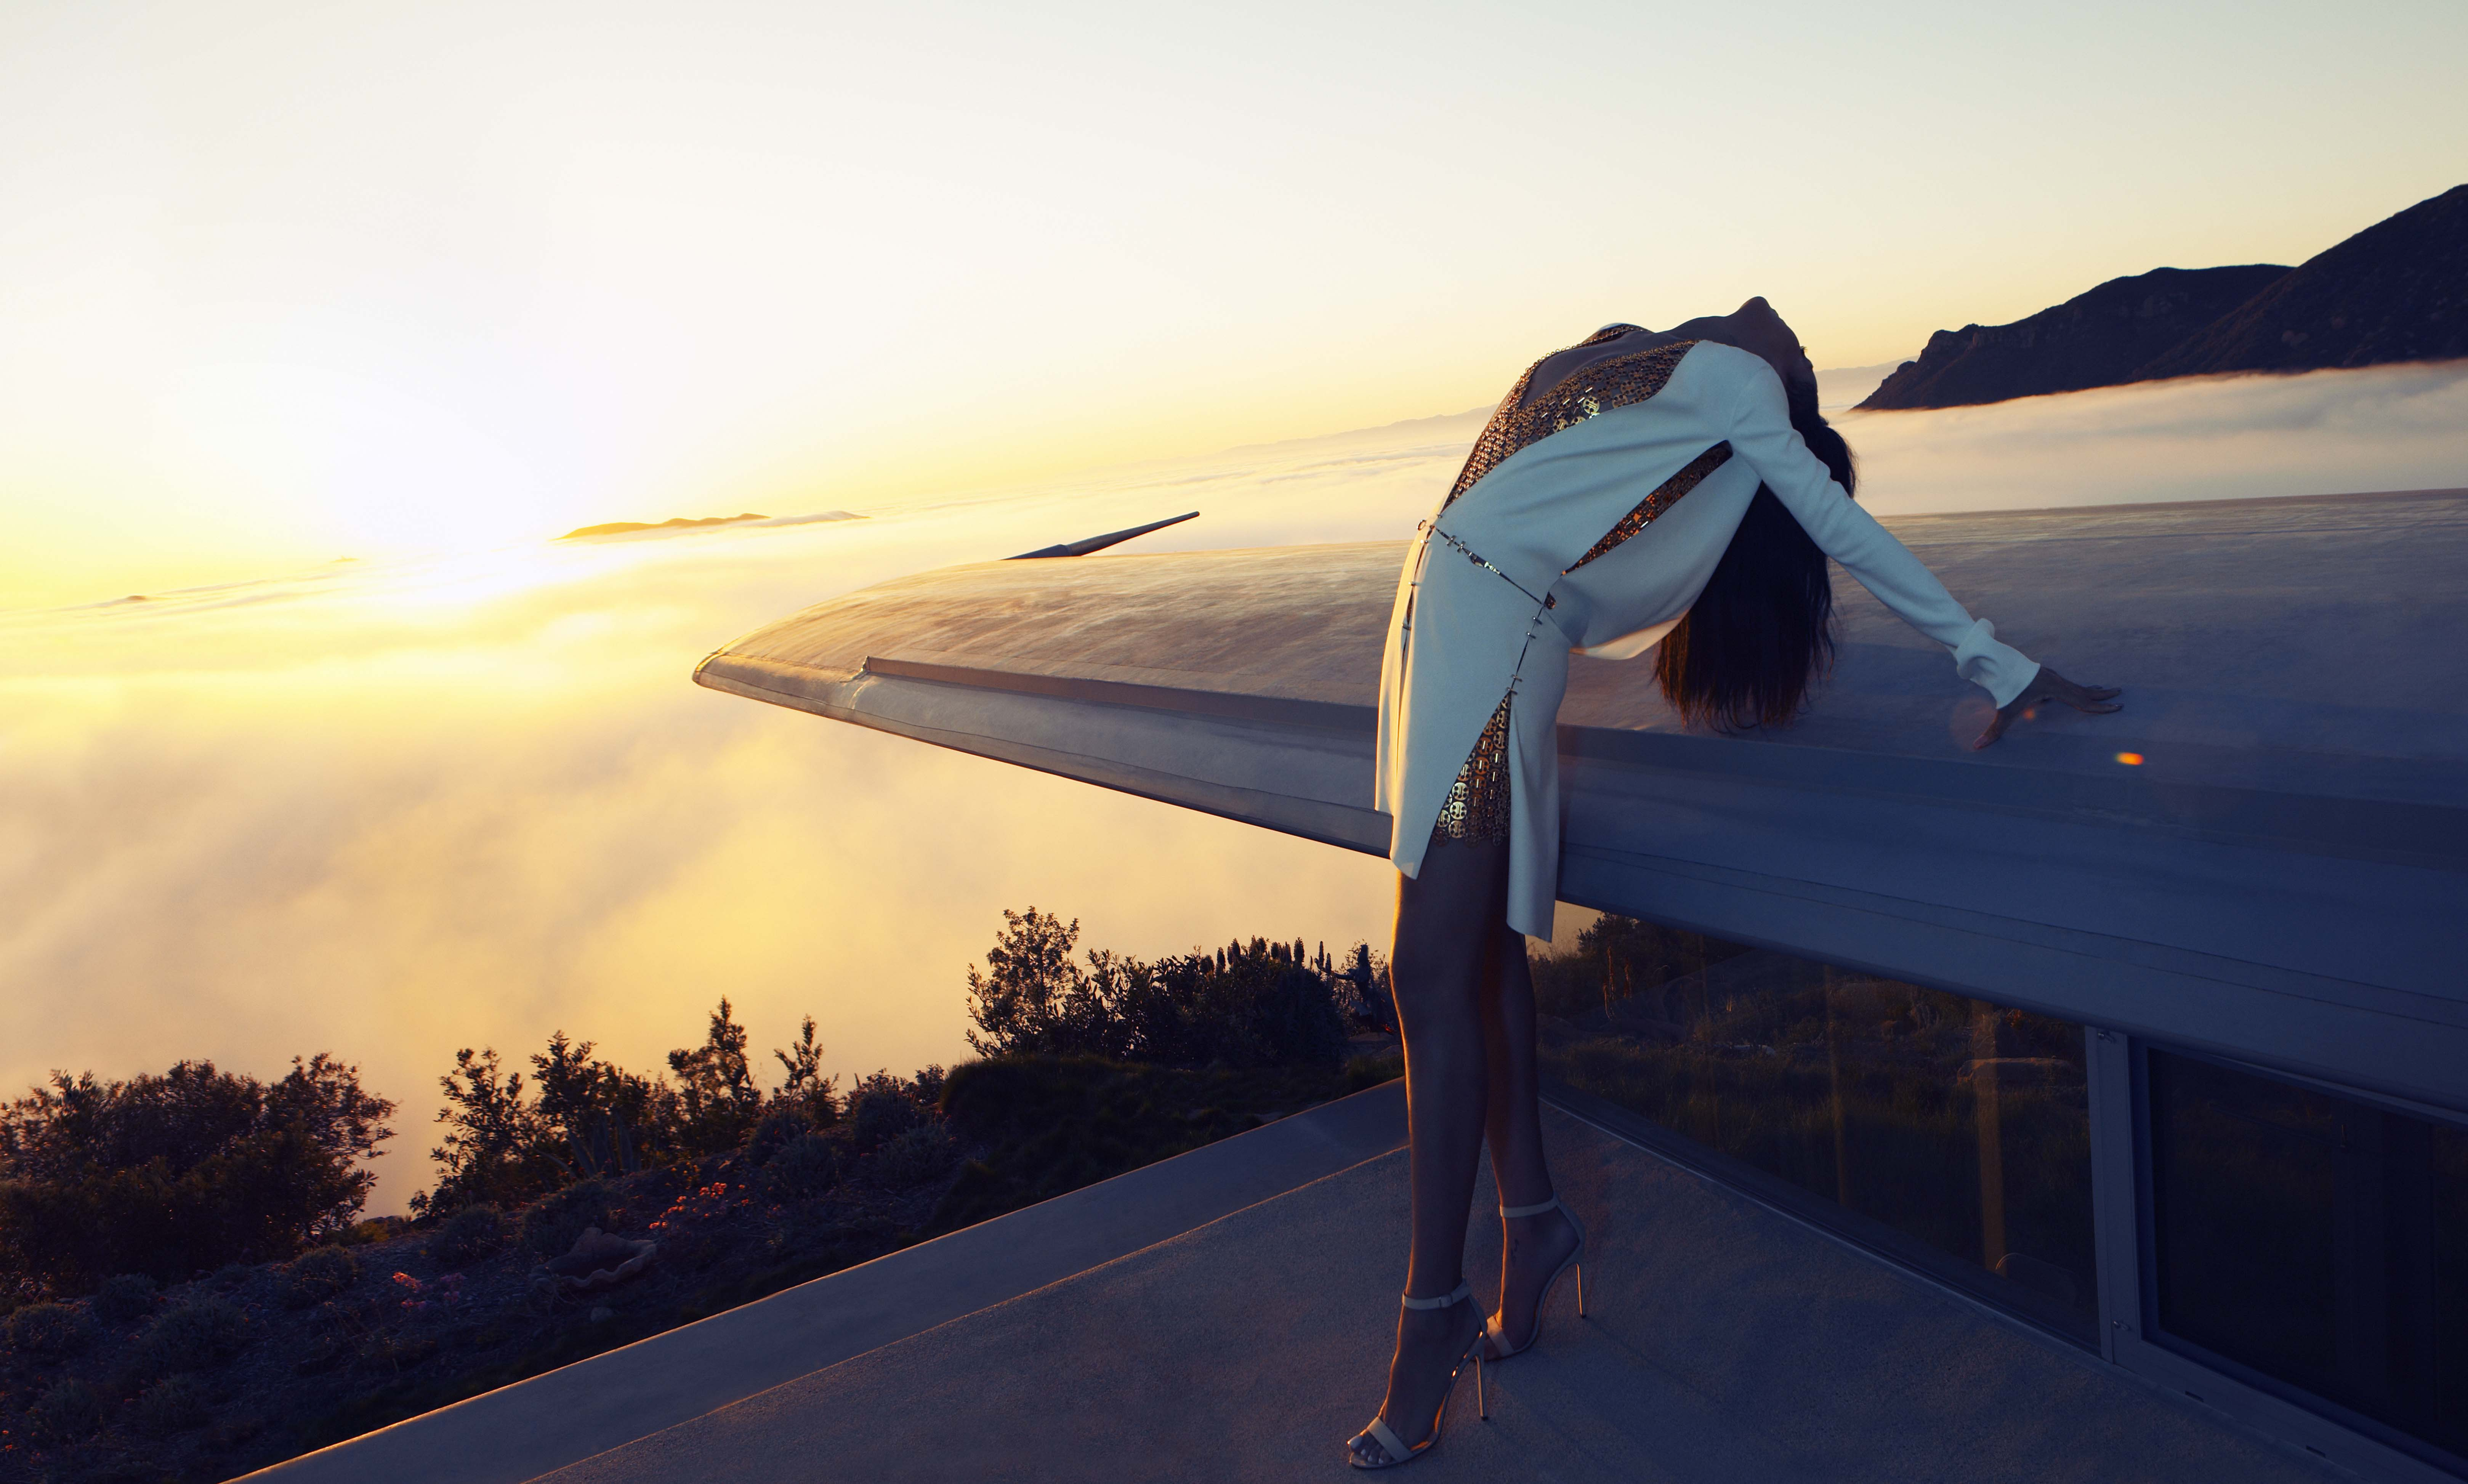 _The_girl_on_the_roof_054265_